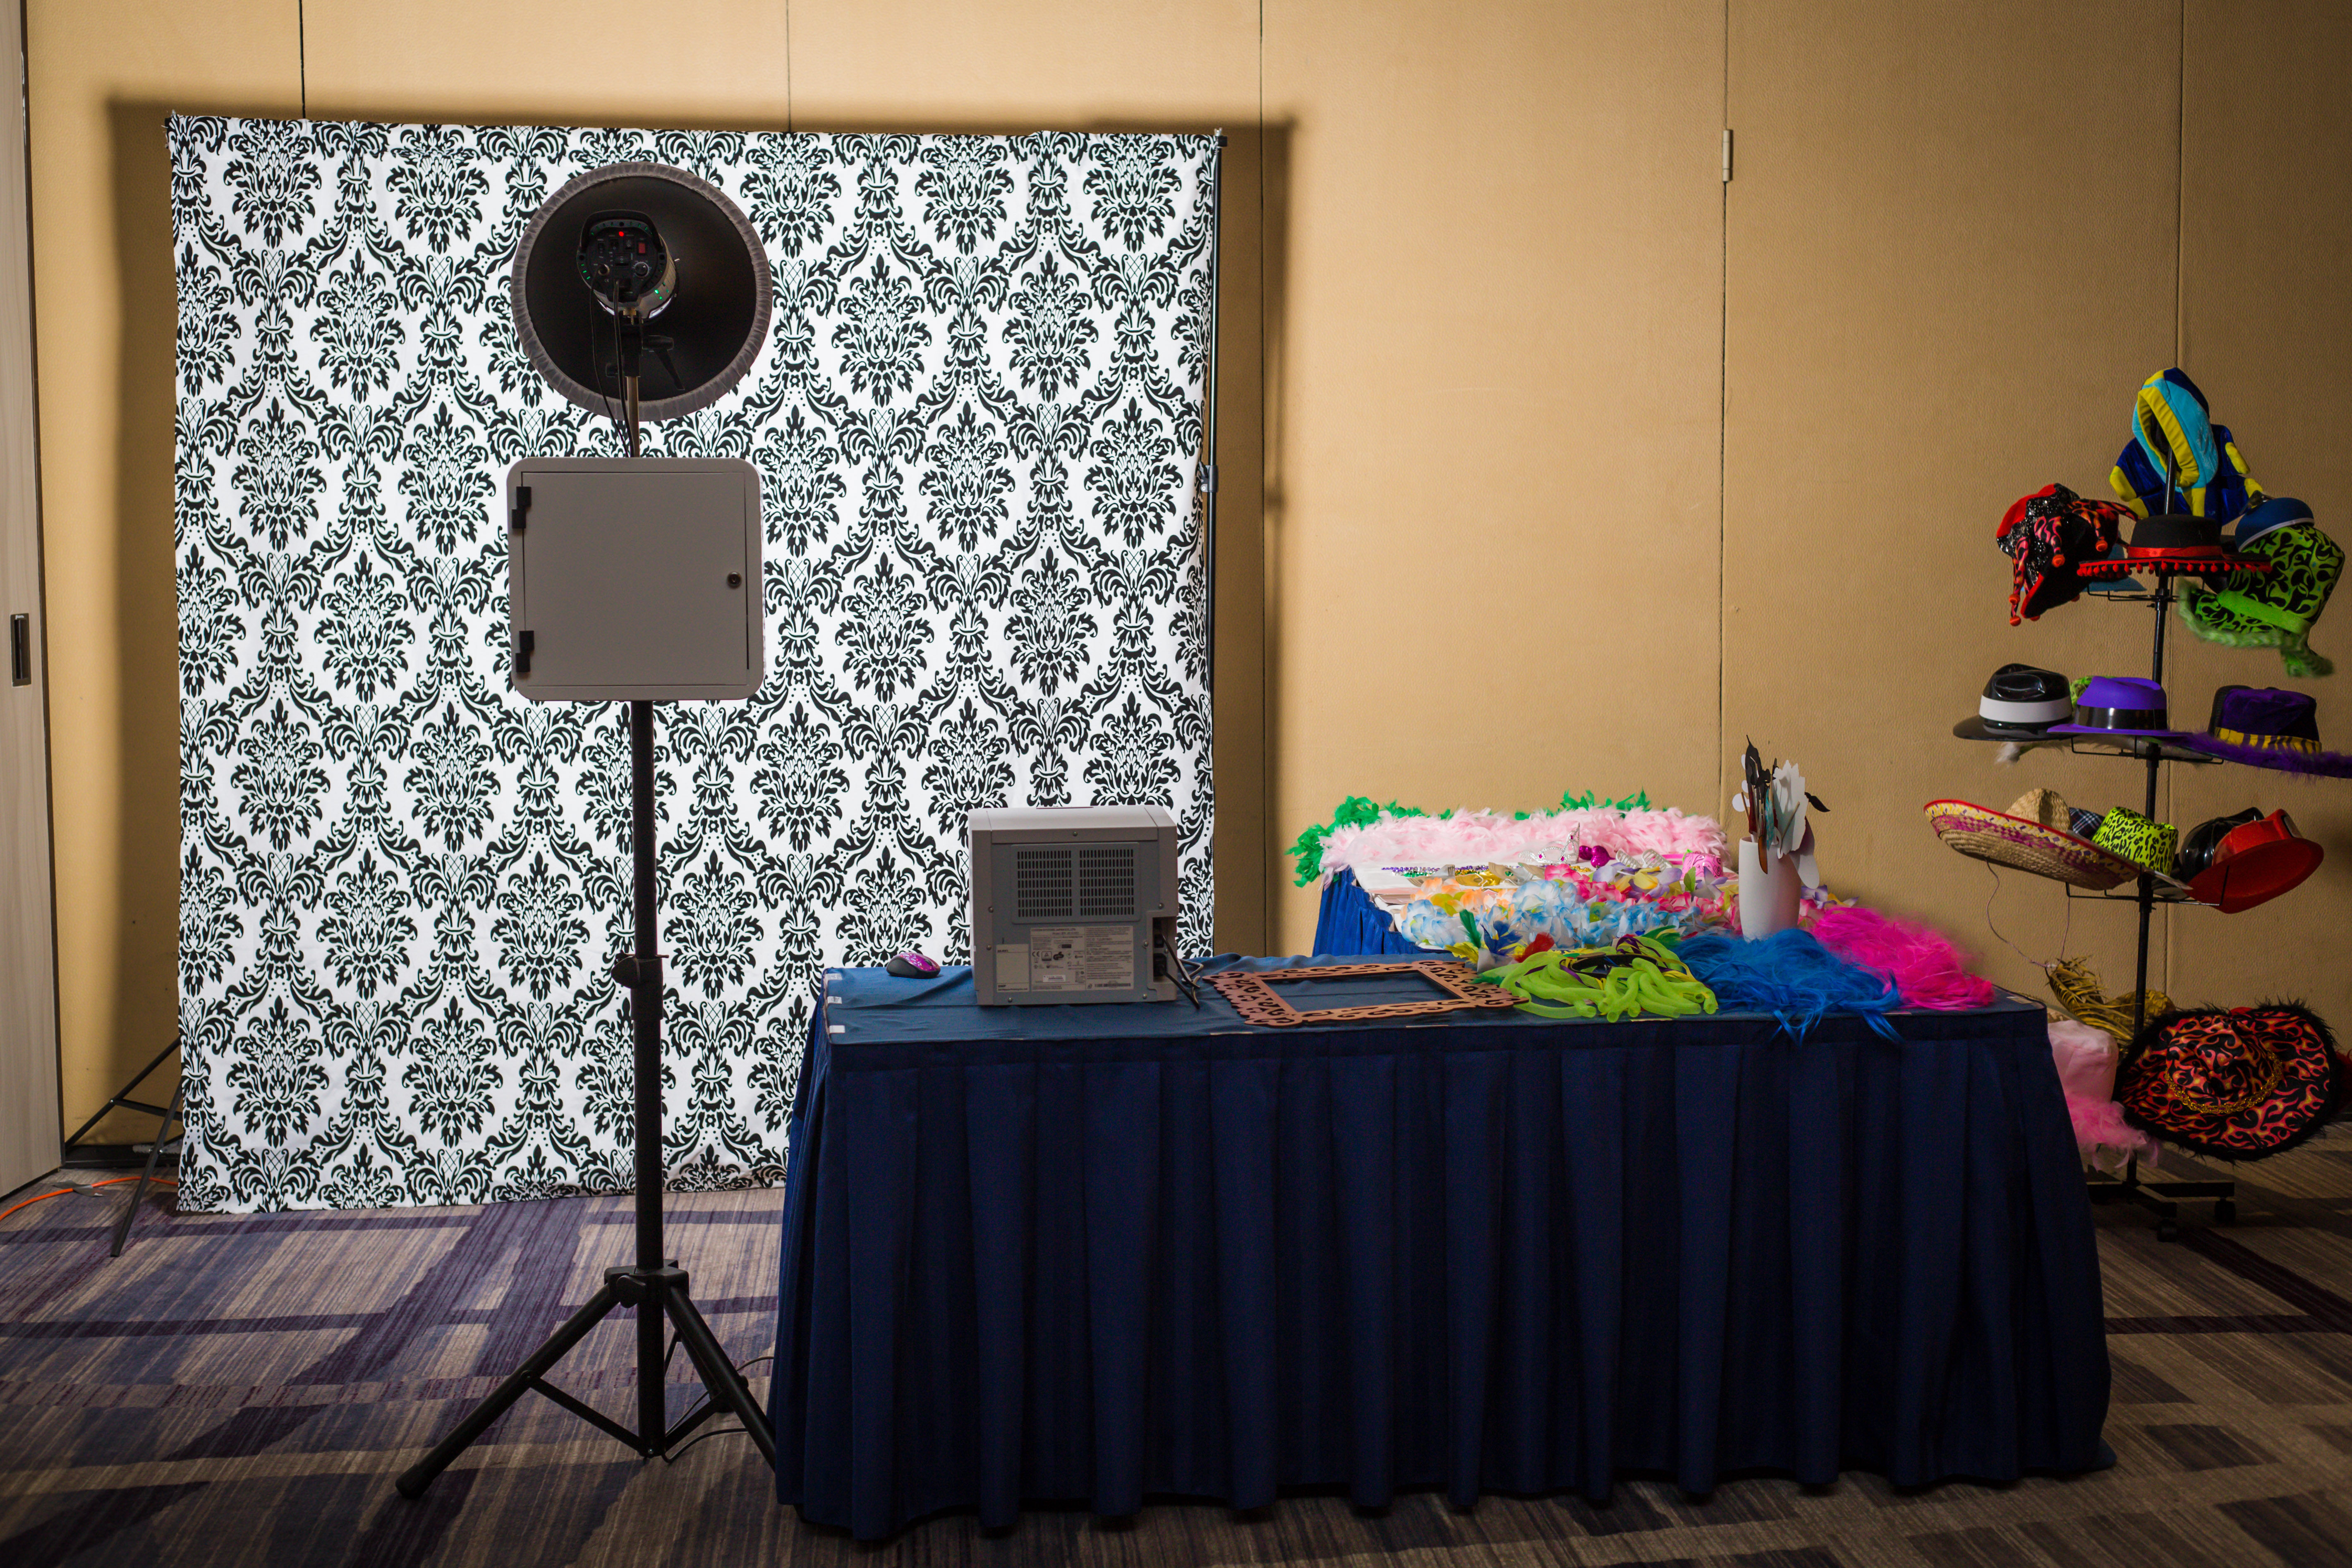 Photo Booth Set up 1